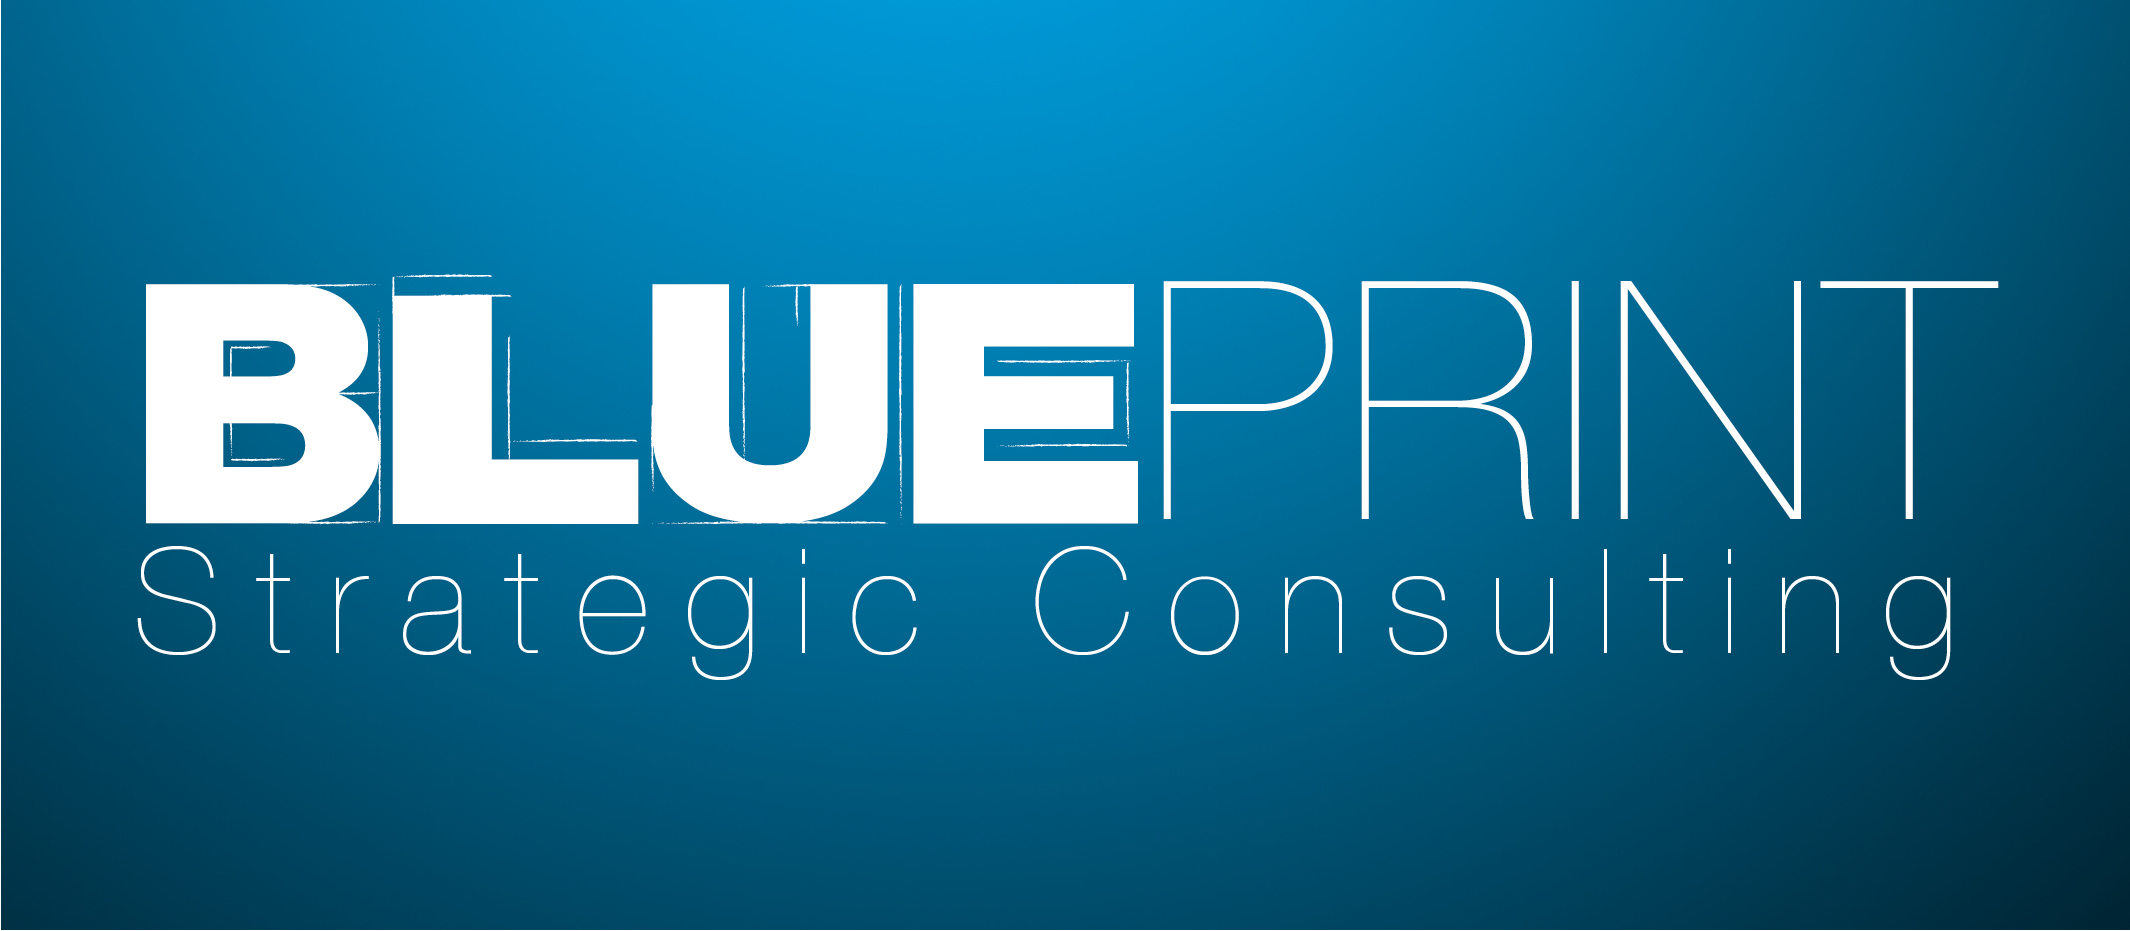 Blueprint strategic consulting advocacy strategy malvernweather Gallery